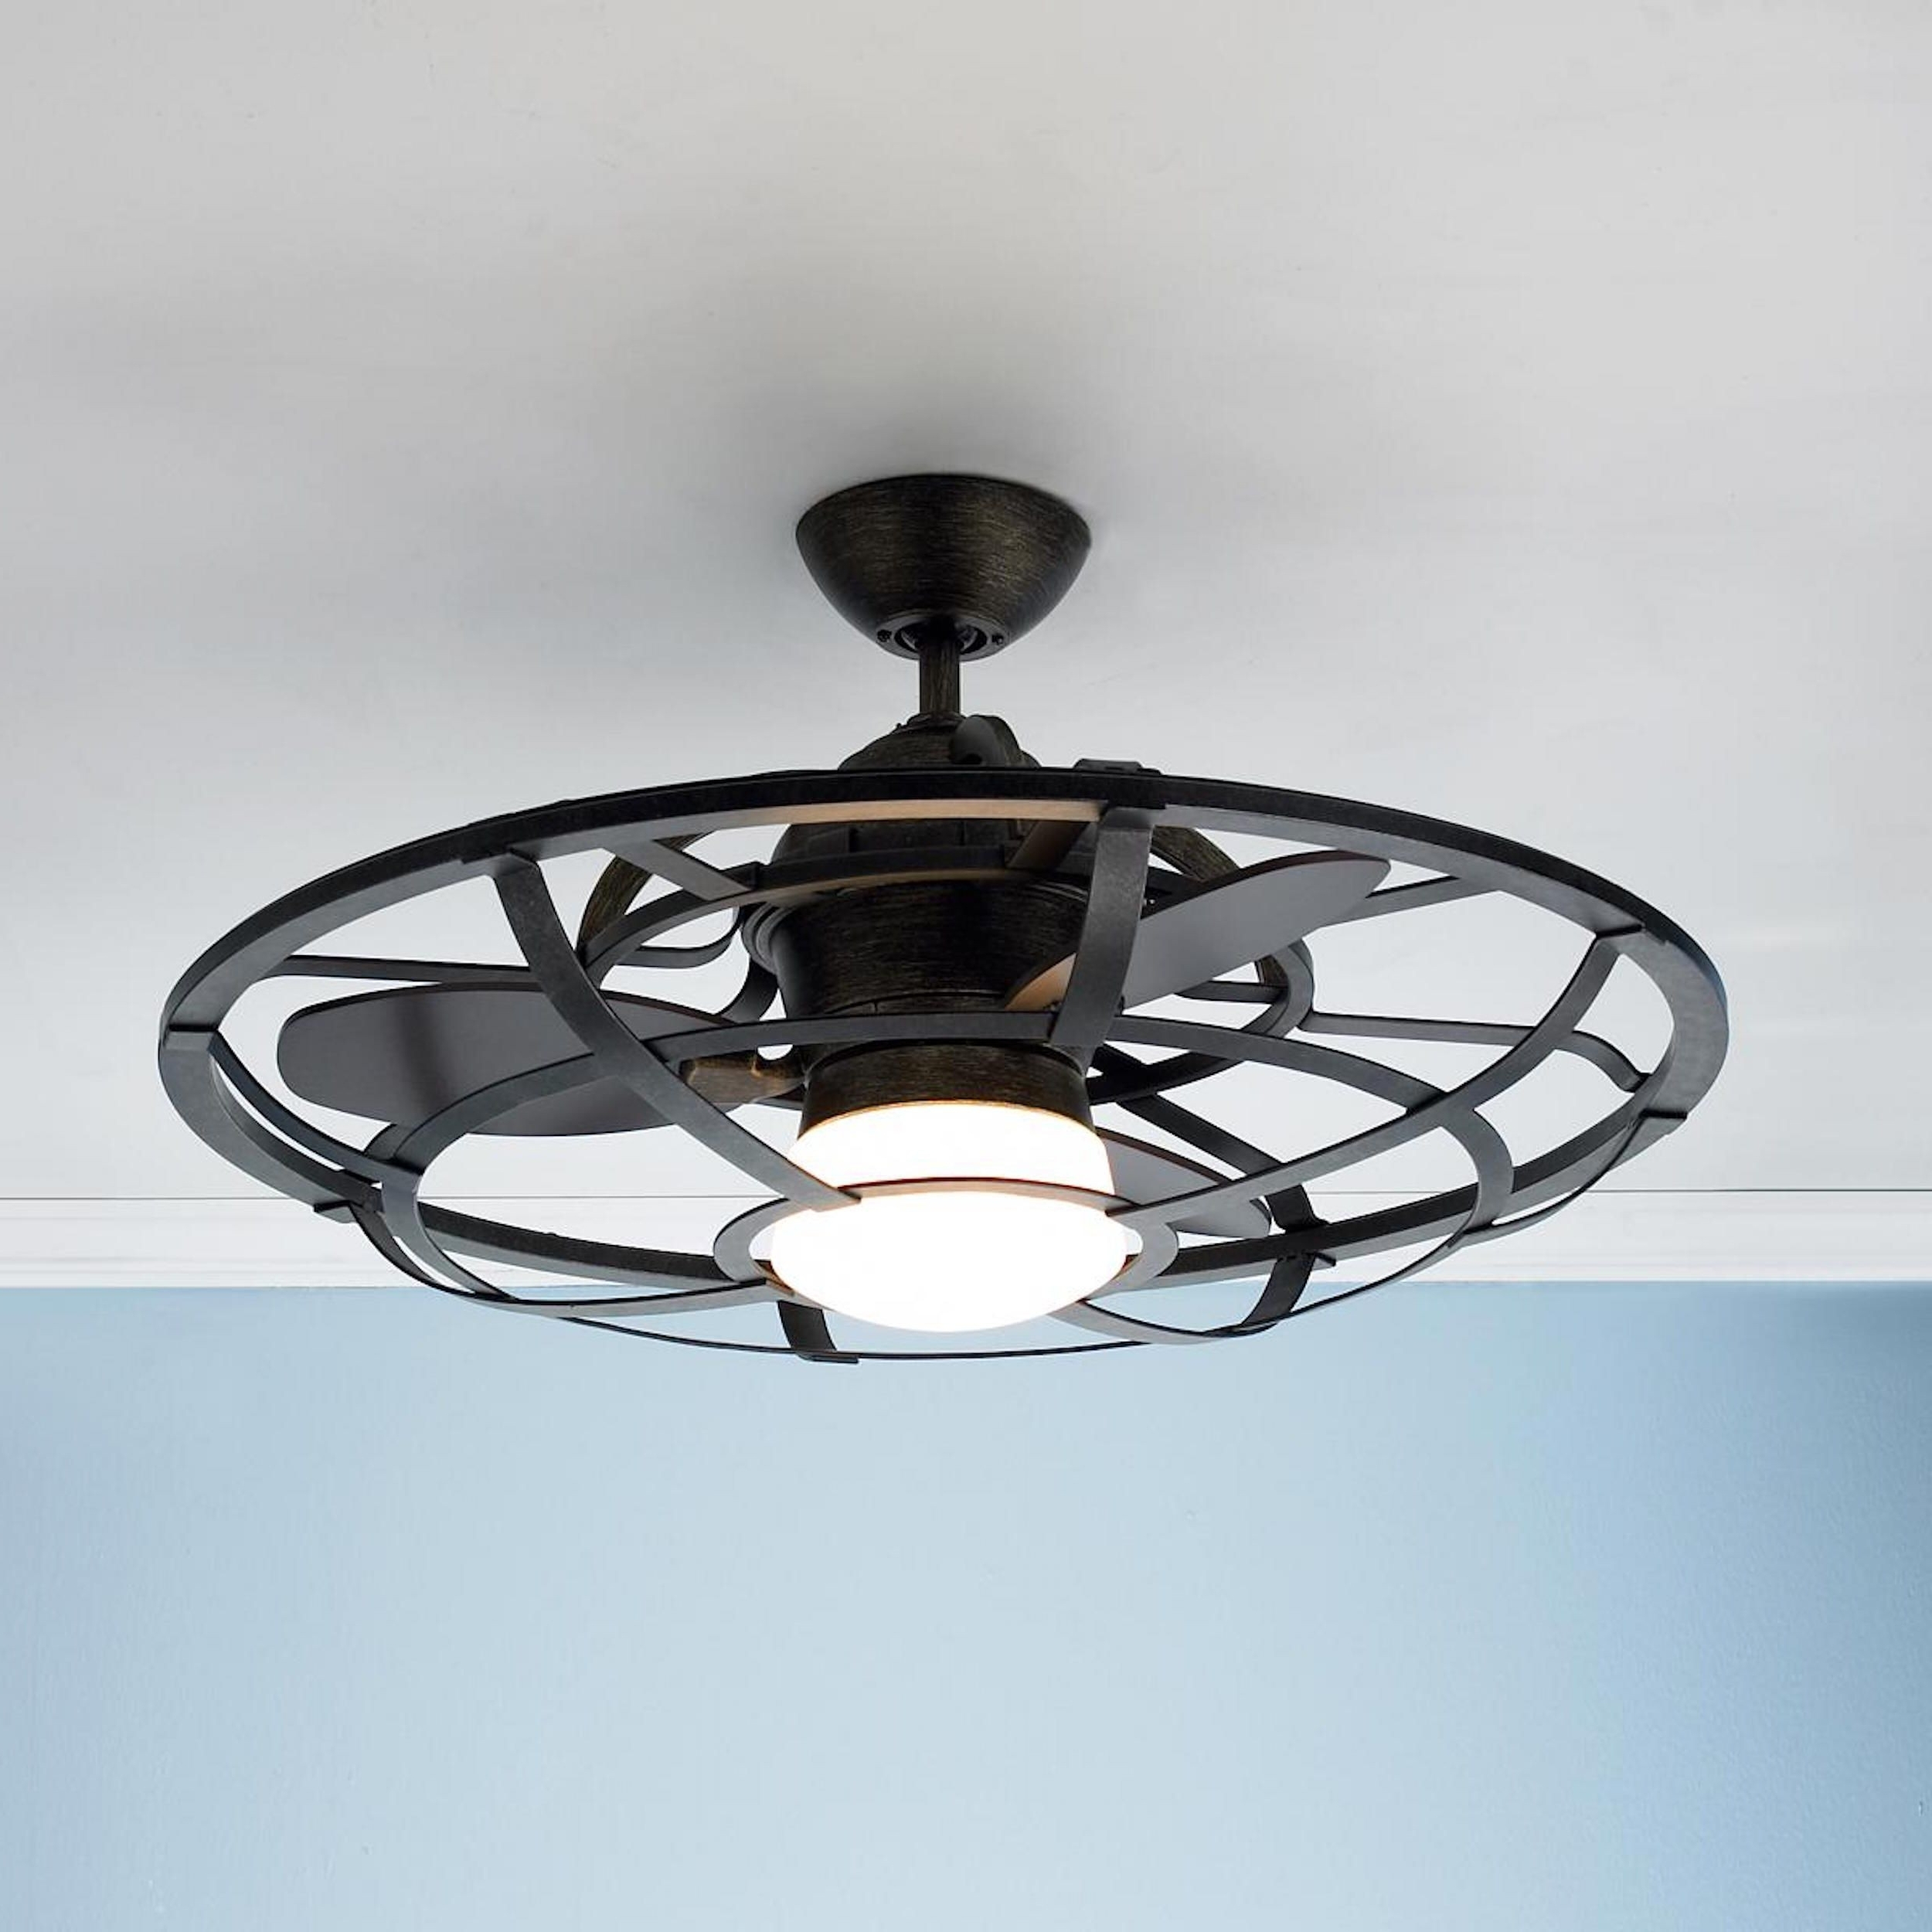 Outdoor Windmill Ceiling Fans With Light With Regard To Famous Farmhouse Ceiling Fan Lowes (View 12 of 20)